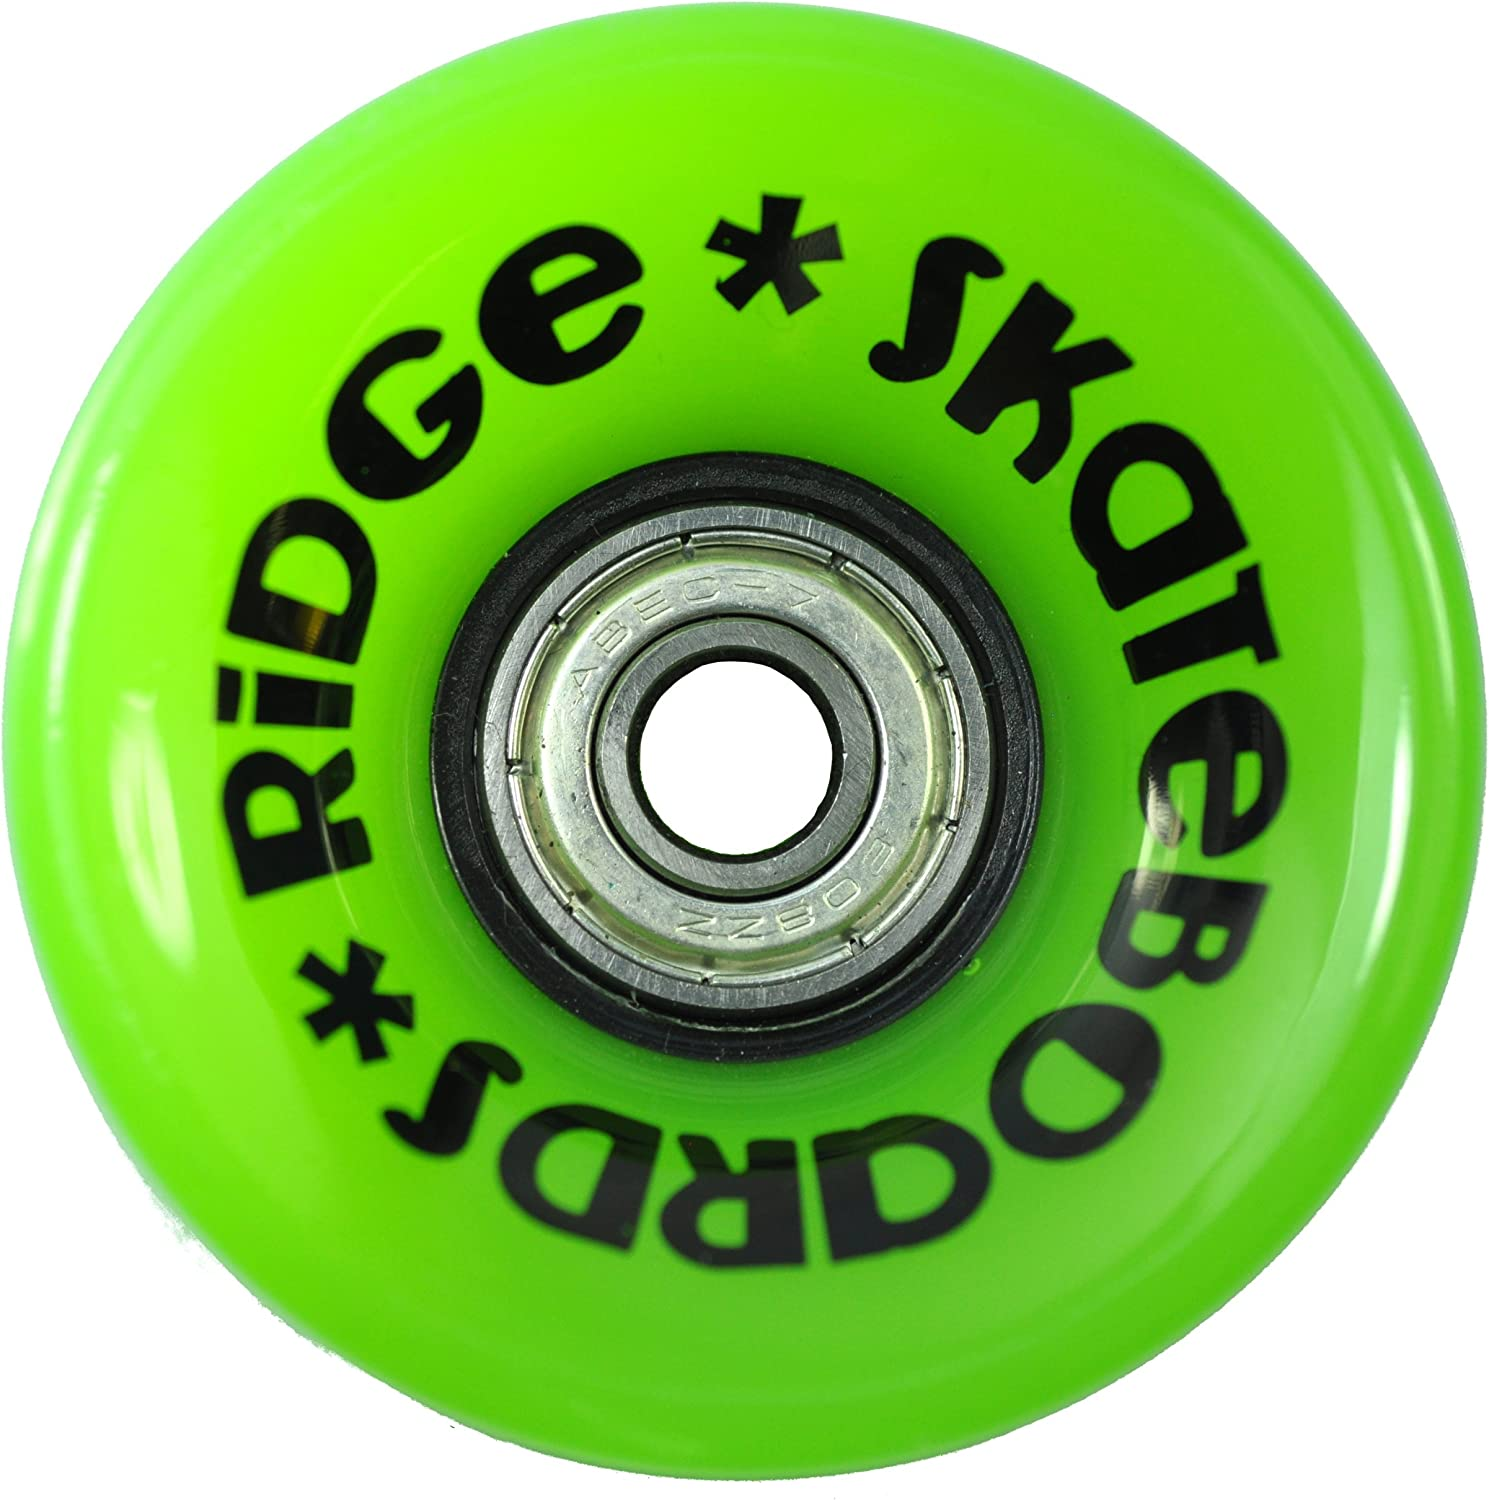 Ridge Retro Cruiser Board Black Green - 1